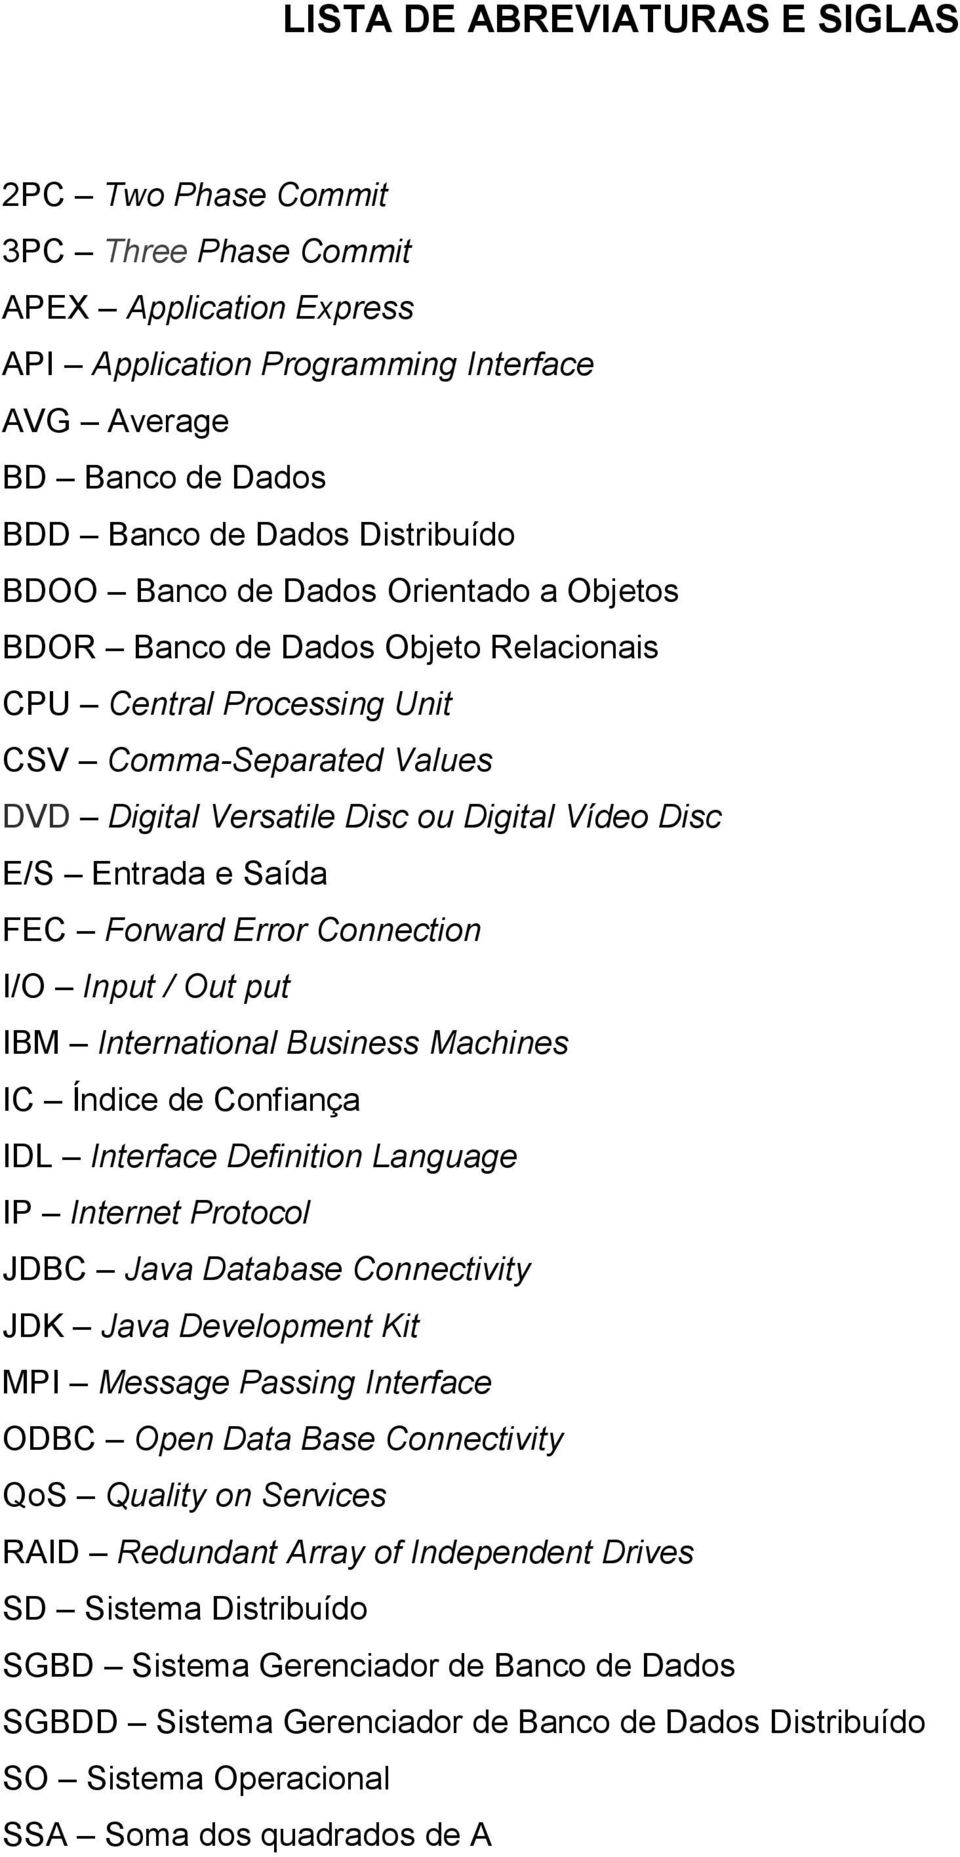 Saída FEC Forward Error Connection I/O Input / Out put IBM International Business Machines IC Índice de Confiança IDL Interface Definition Language IP Internet Protocol JDBC Java Database